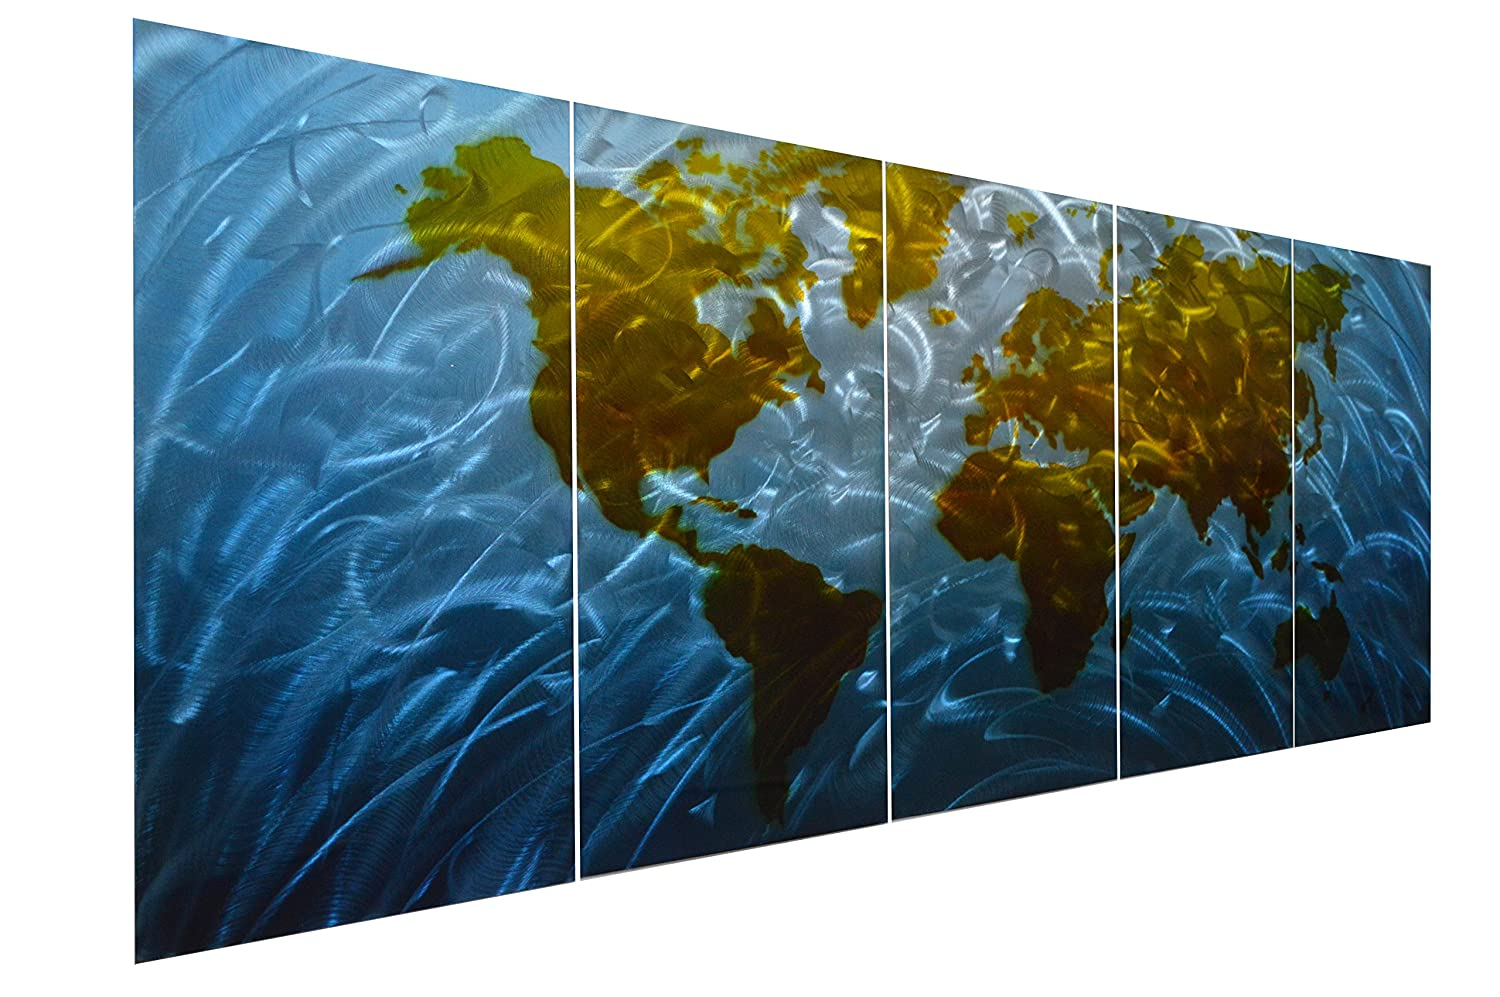 """Pure Art Blue World Map Metal Wall Art, Large Scale Hanging, 3D Wall Art for Modern and Contemporary Decor, 5-Panel Abstract Contemporary Sculpture, 24""""x 64"""", Works in Indoor and Outdoor Settings"""